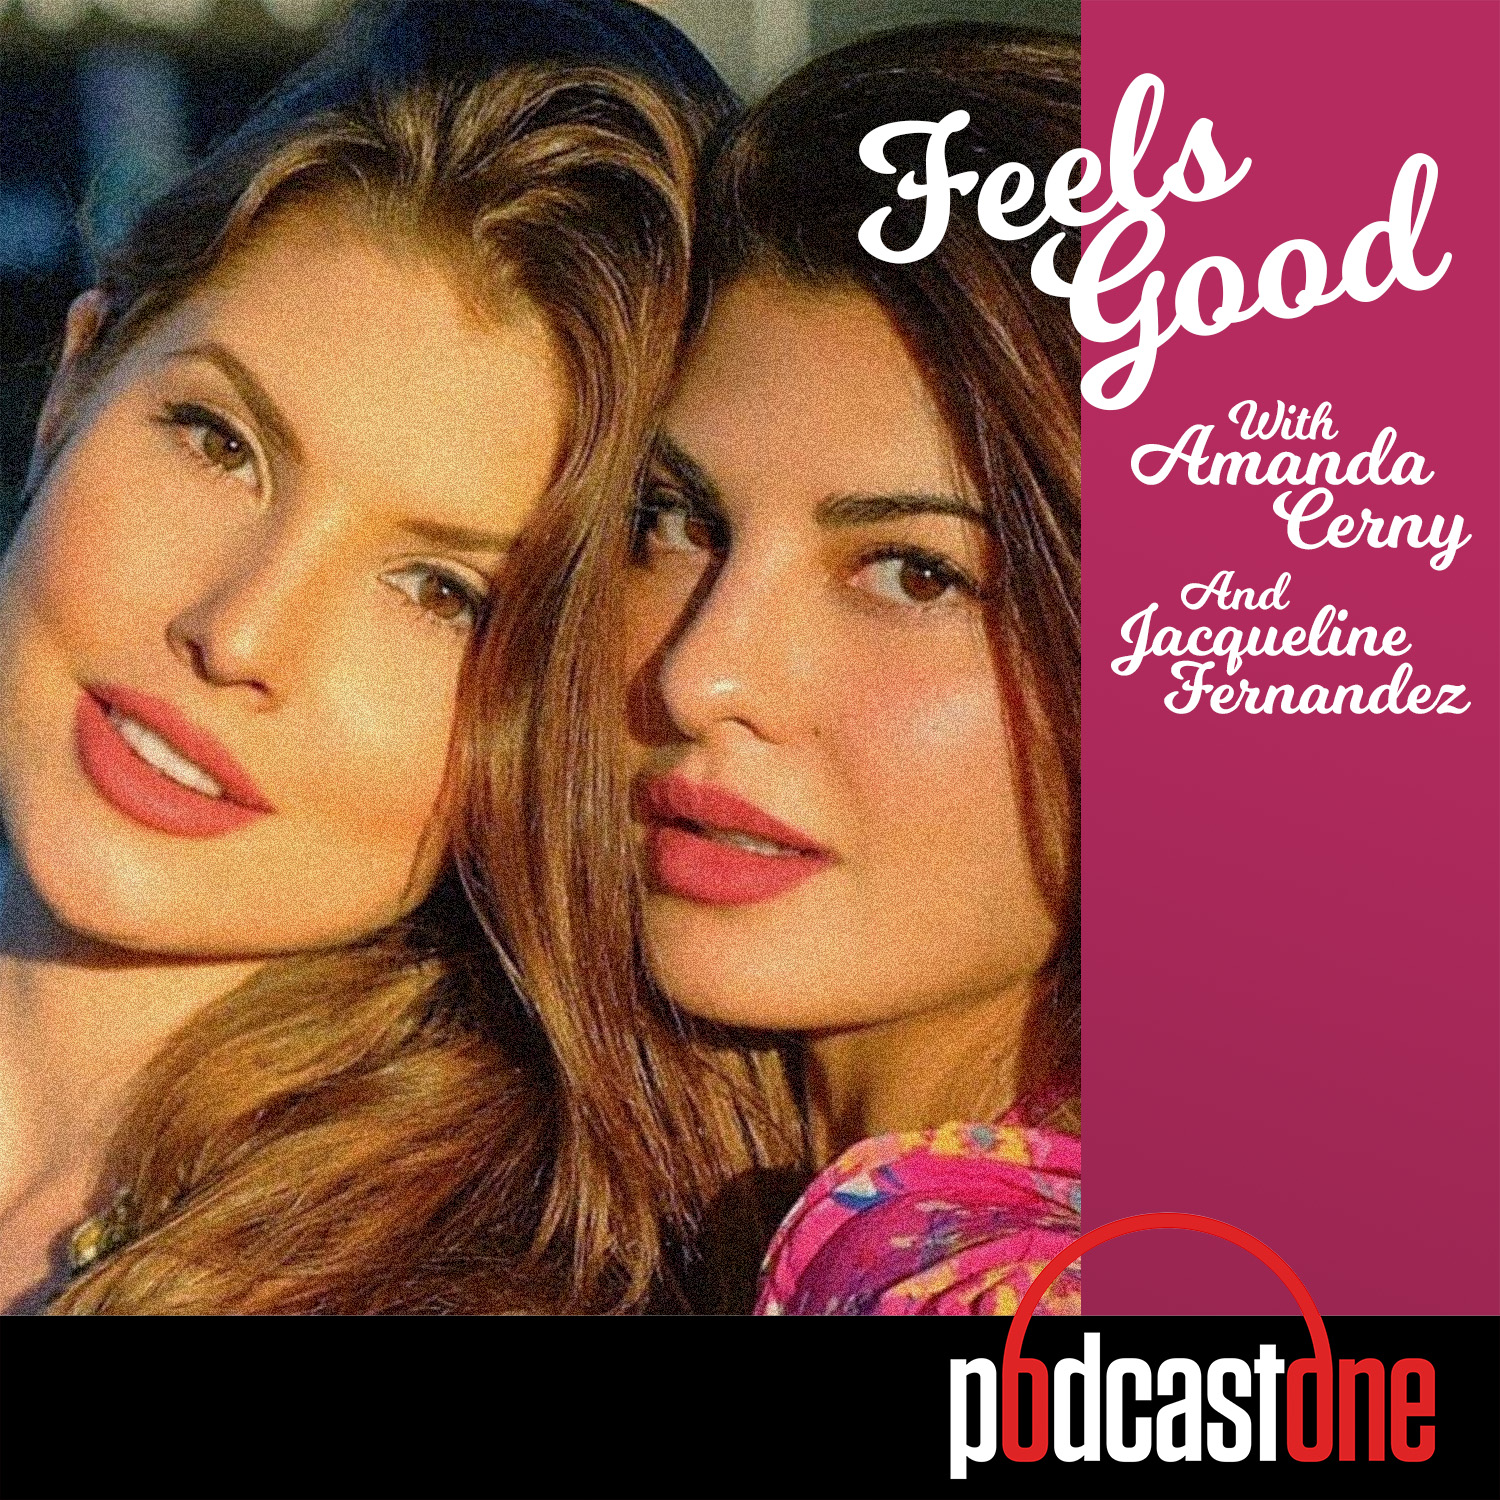 Feels Good with Amanda Cerny and Jacqueline Fernandez